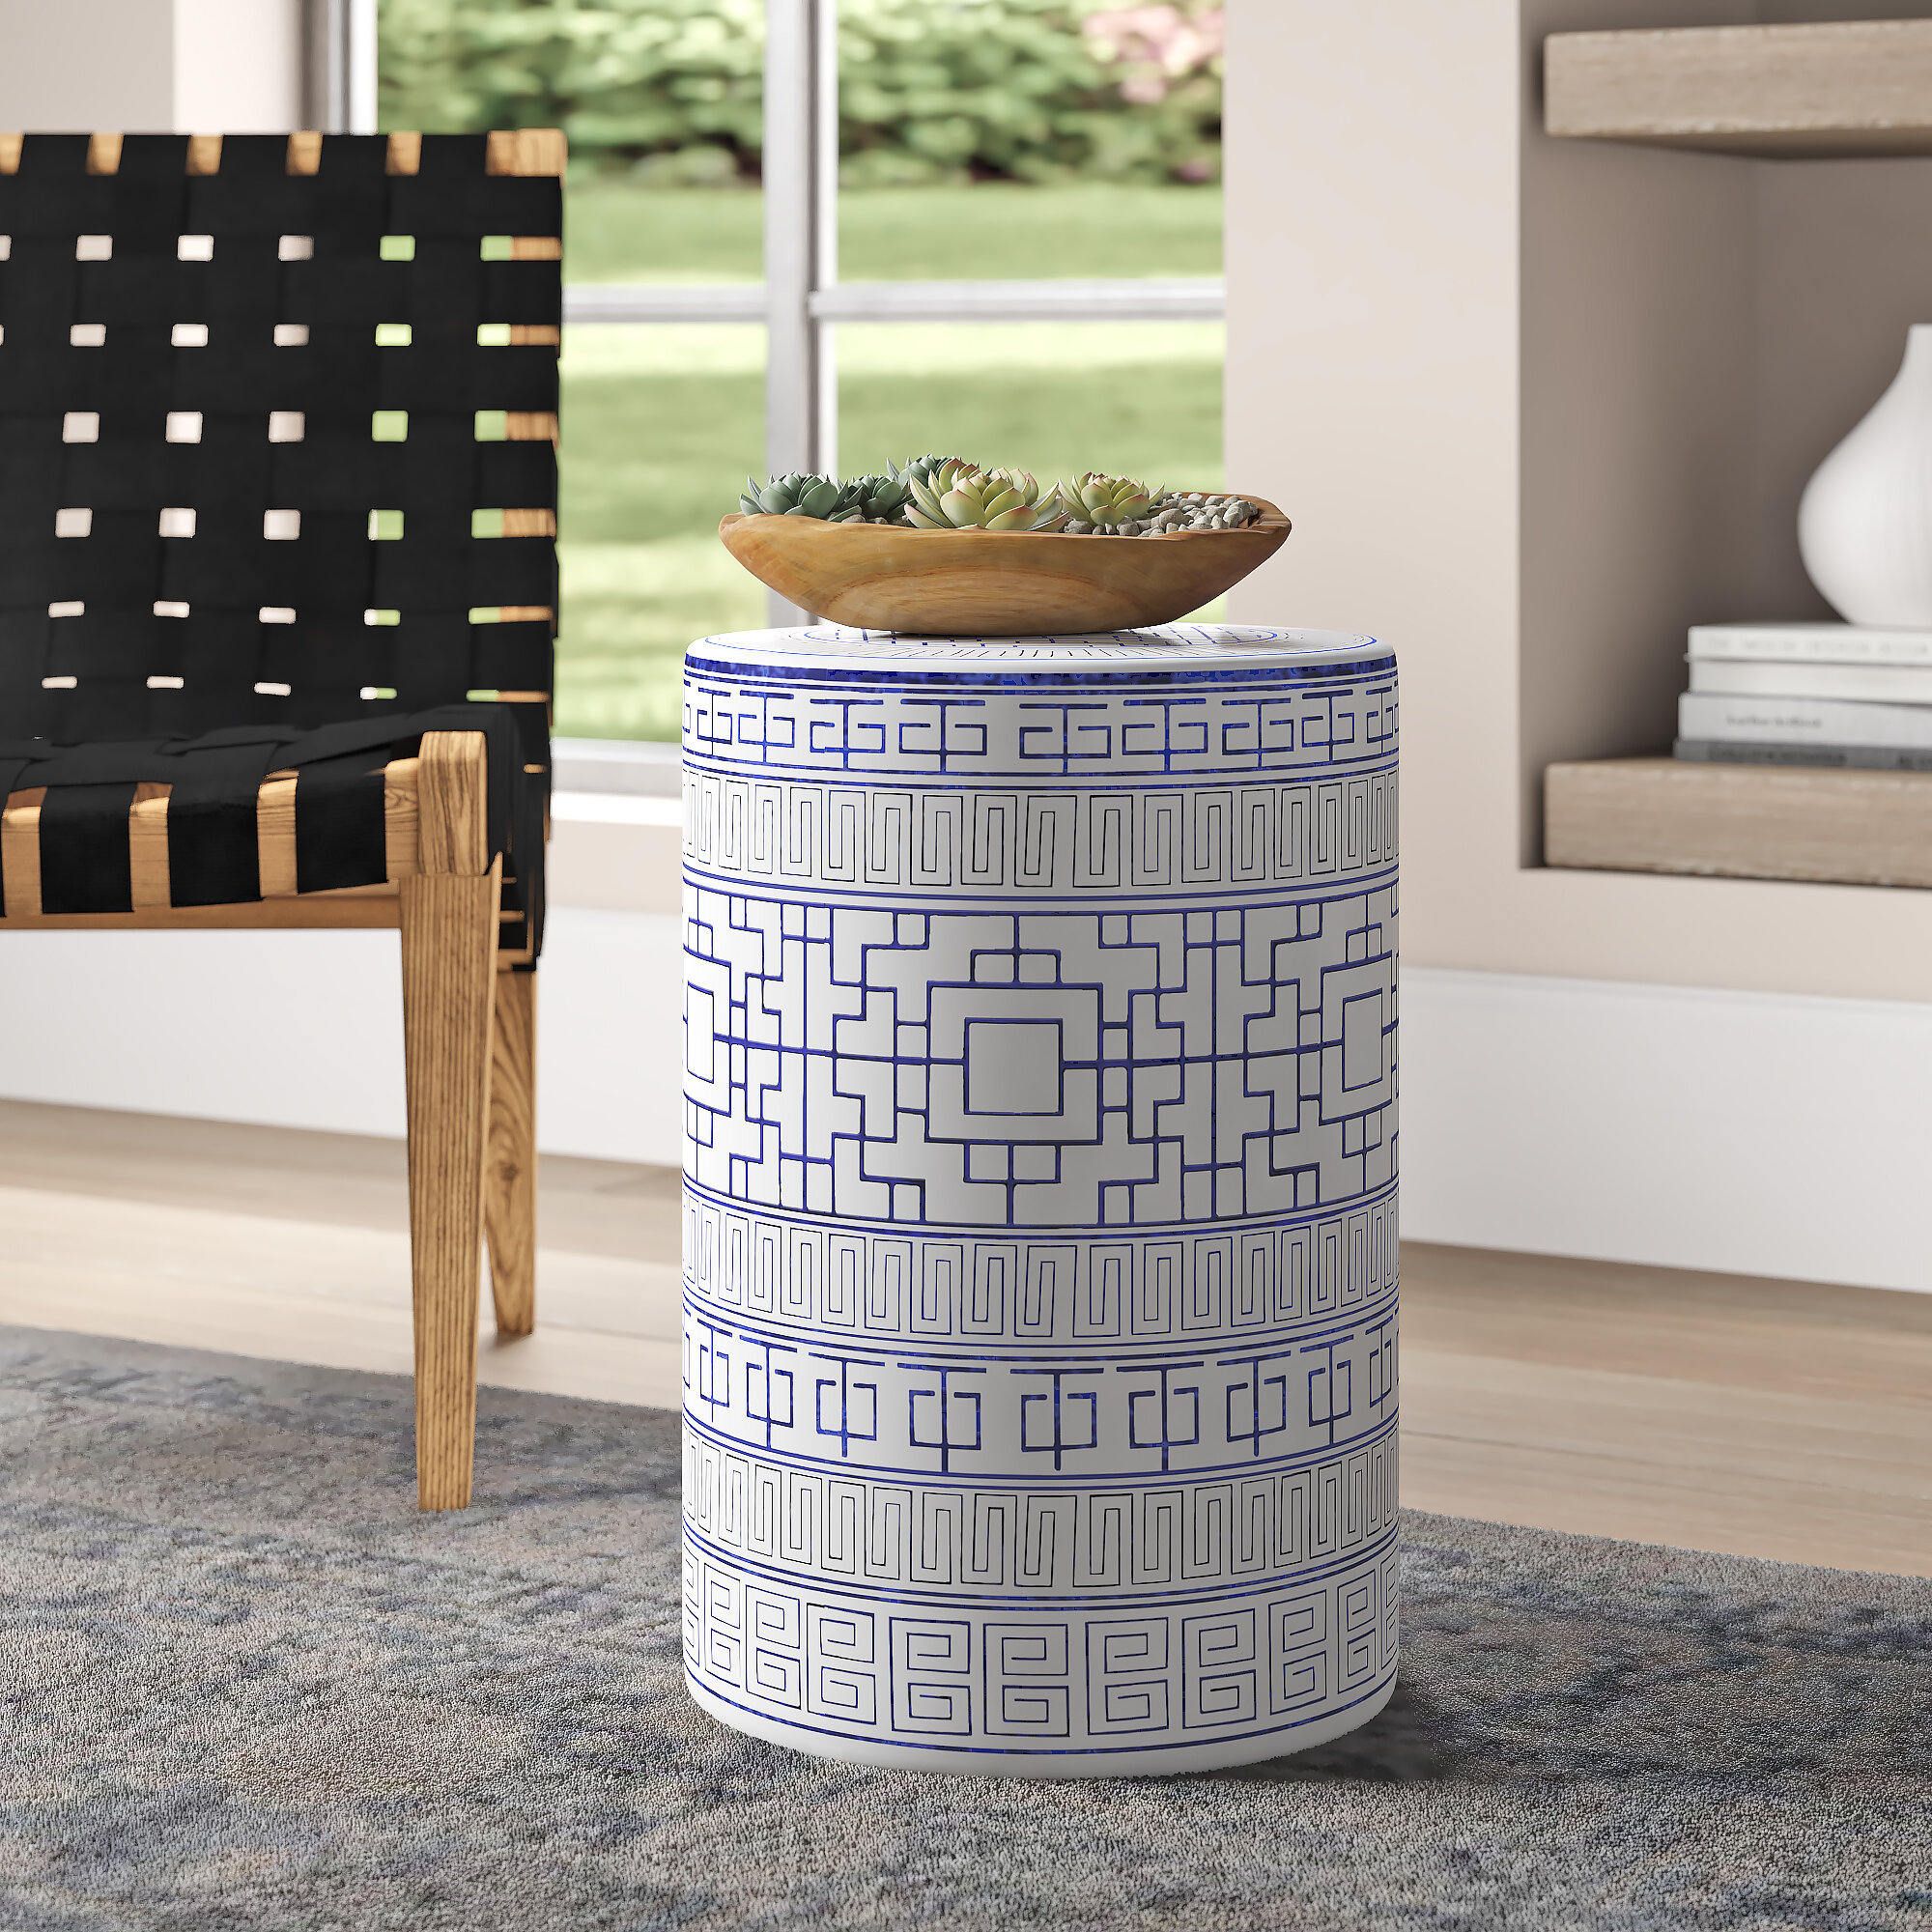 Ceramic Garden Accent Stools You'Ll Love In 2020 | Wayfair Throughout Bonville Ceramic Garden Stools (View 14 of 25)